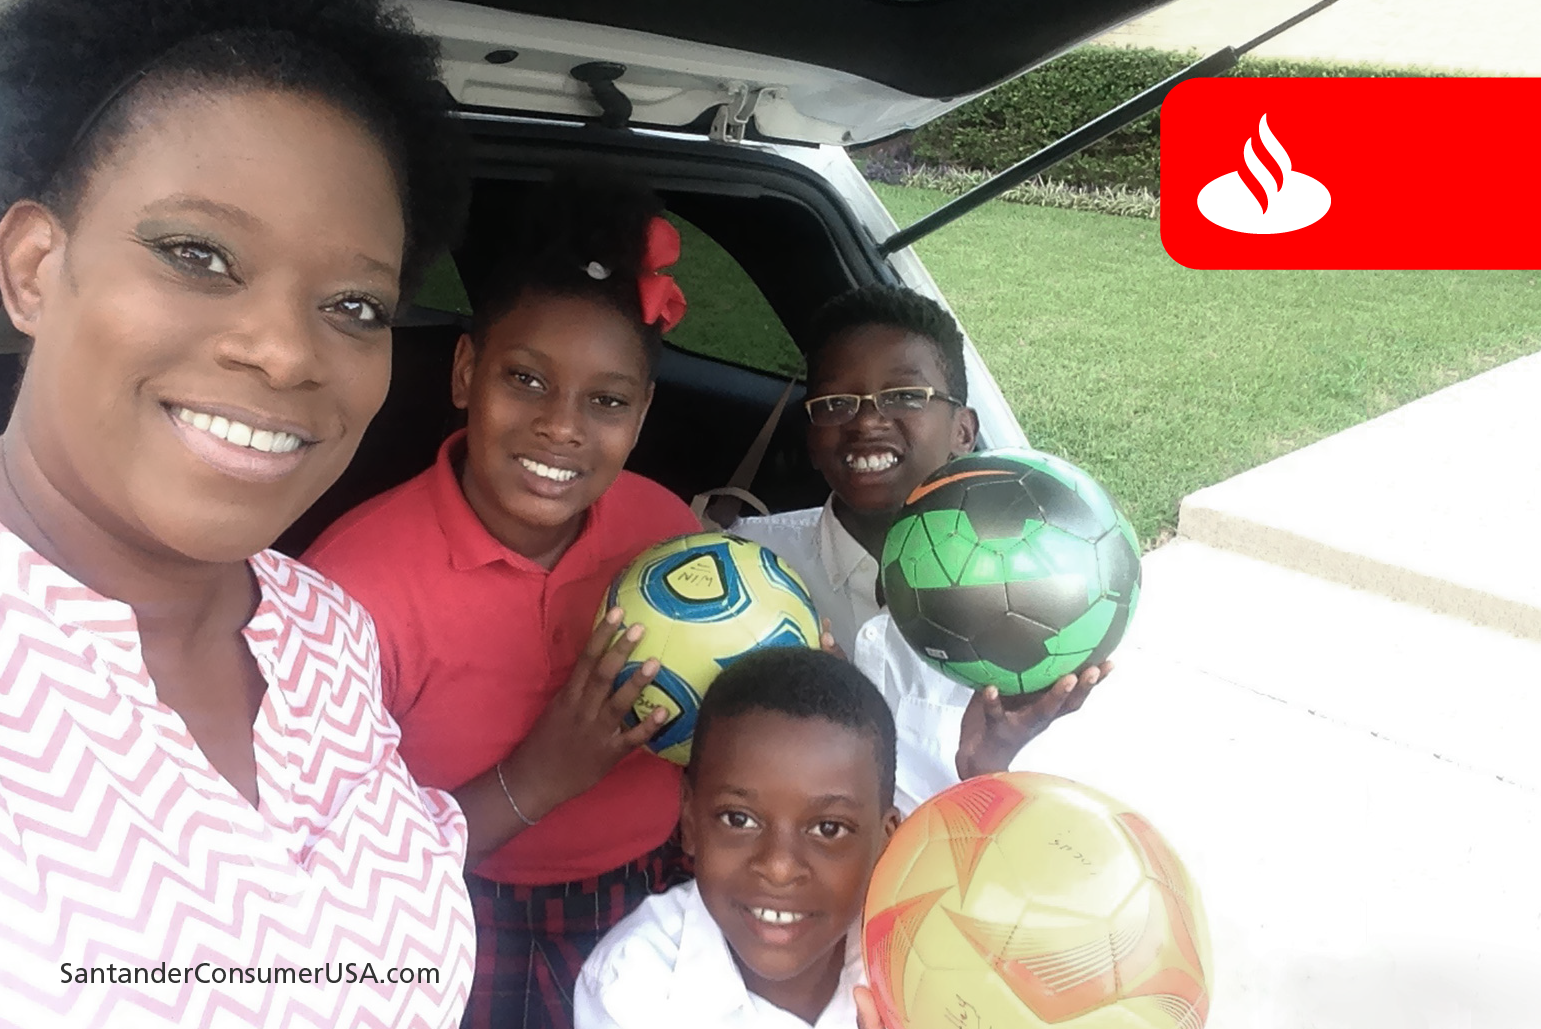 092116-sc-five-family-vehicles-that-score-big-with-soccer-moms